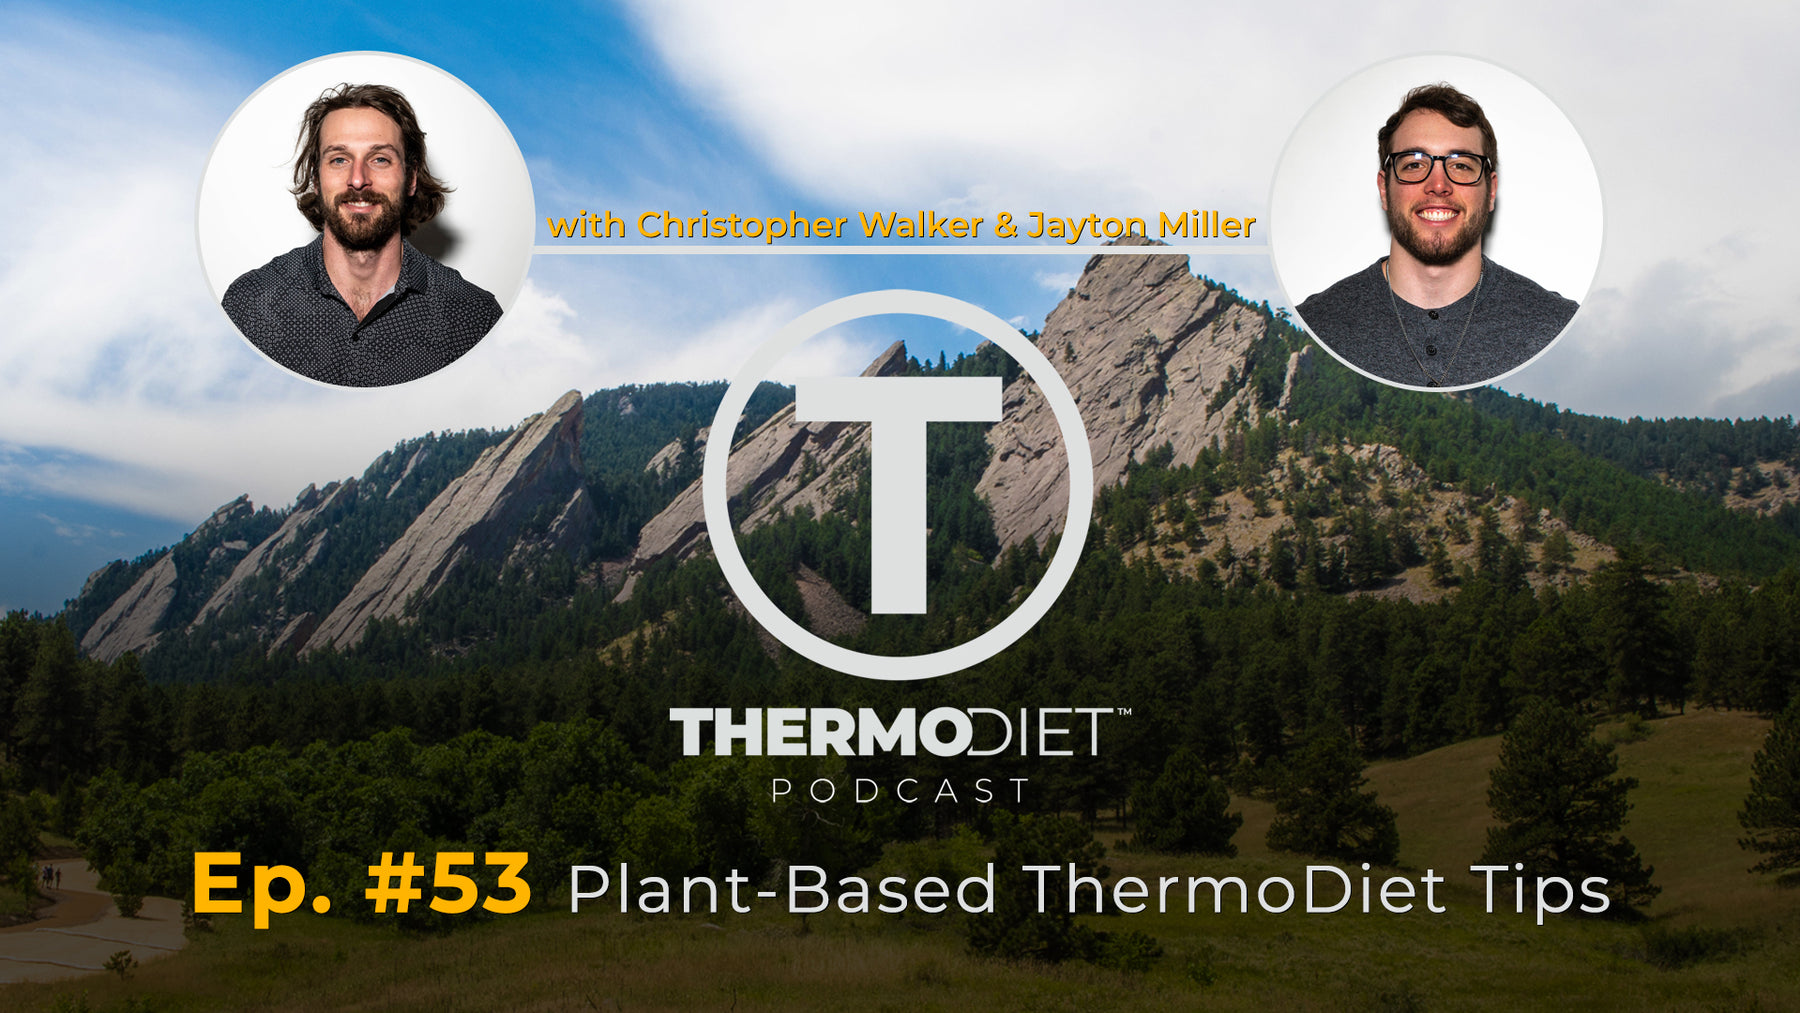 The Thermo Diet Podcast Episode 53 - Vegetarianism and The Thermo Philosophies